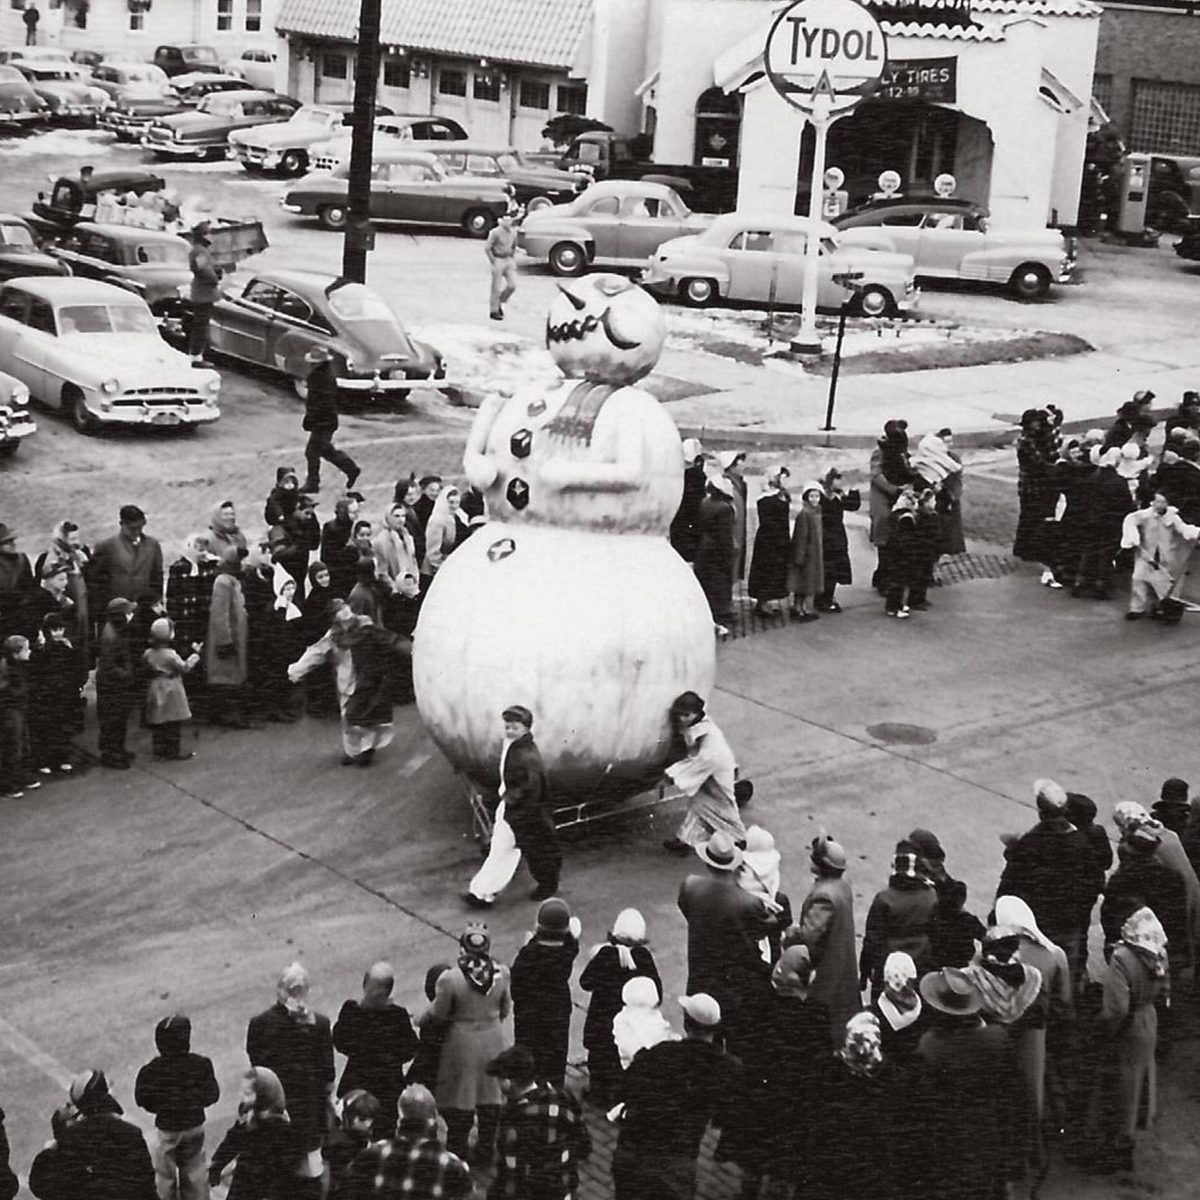 snowman float being wheeled down street during thanksgiving parade in Sheboygan Wi 1950s